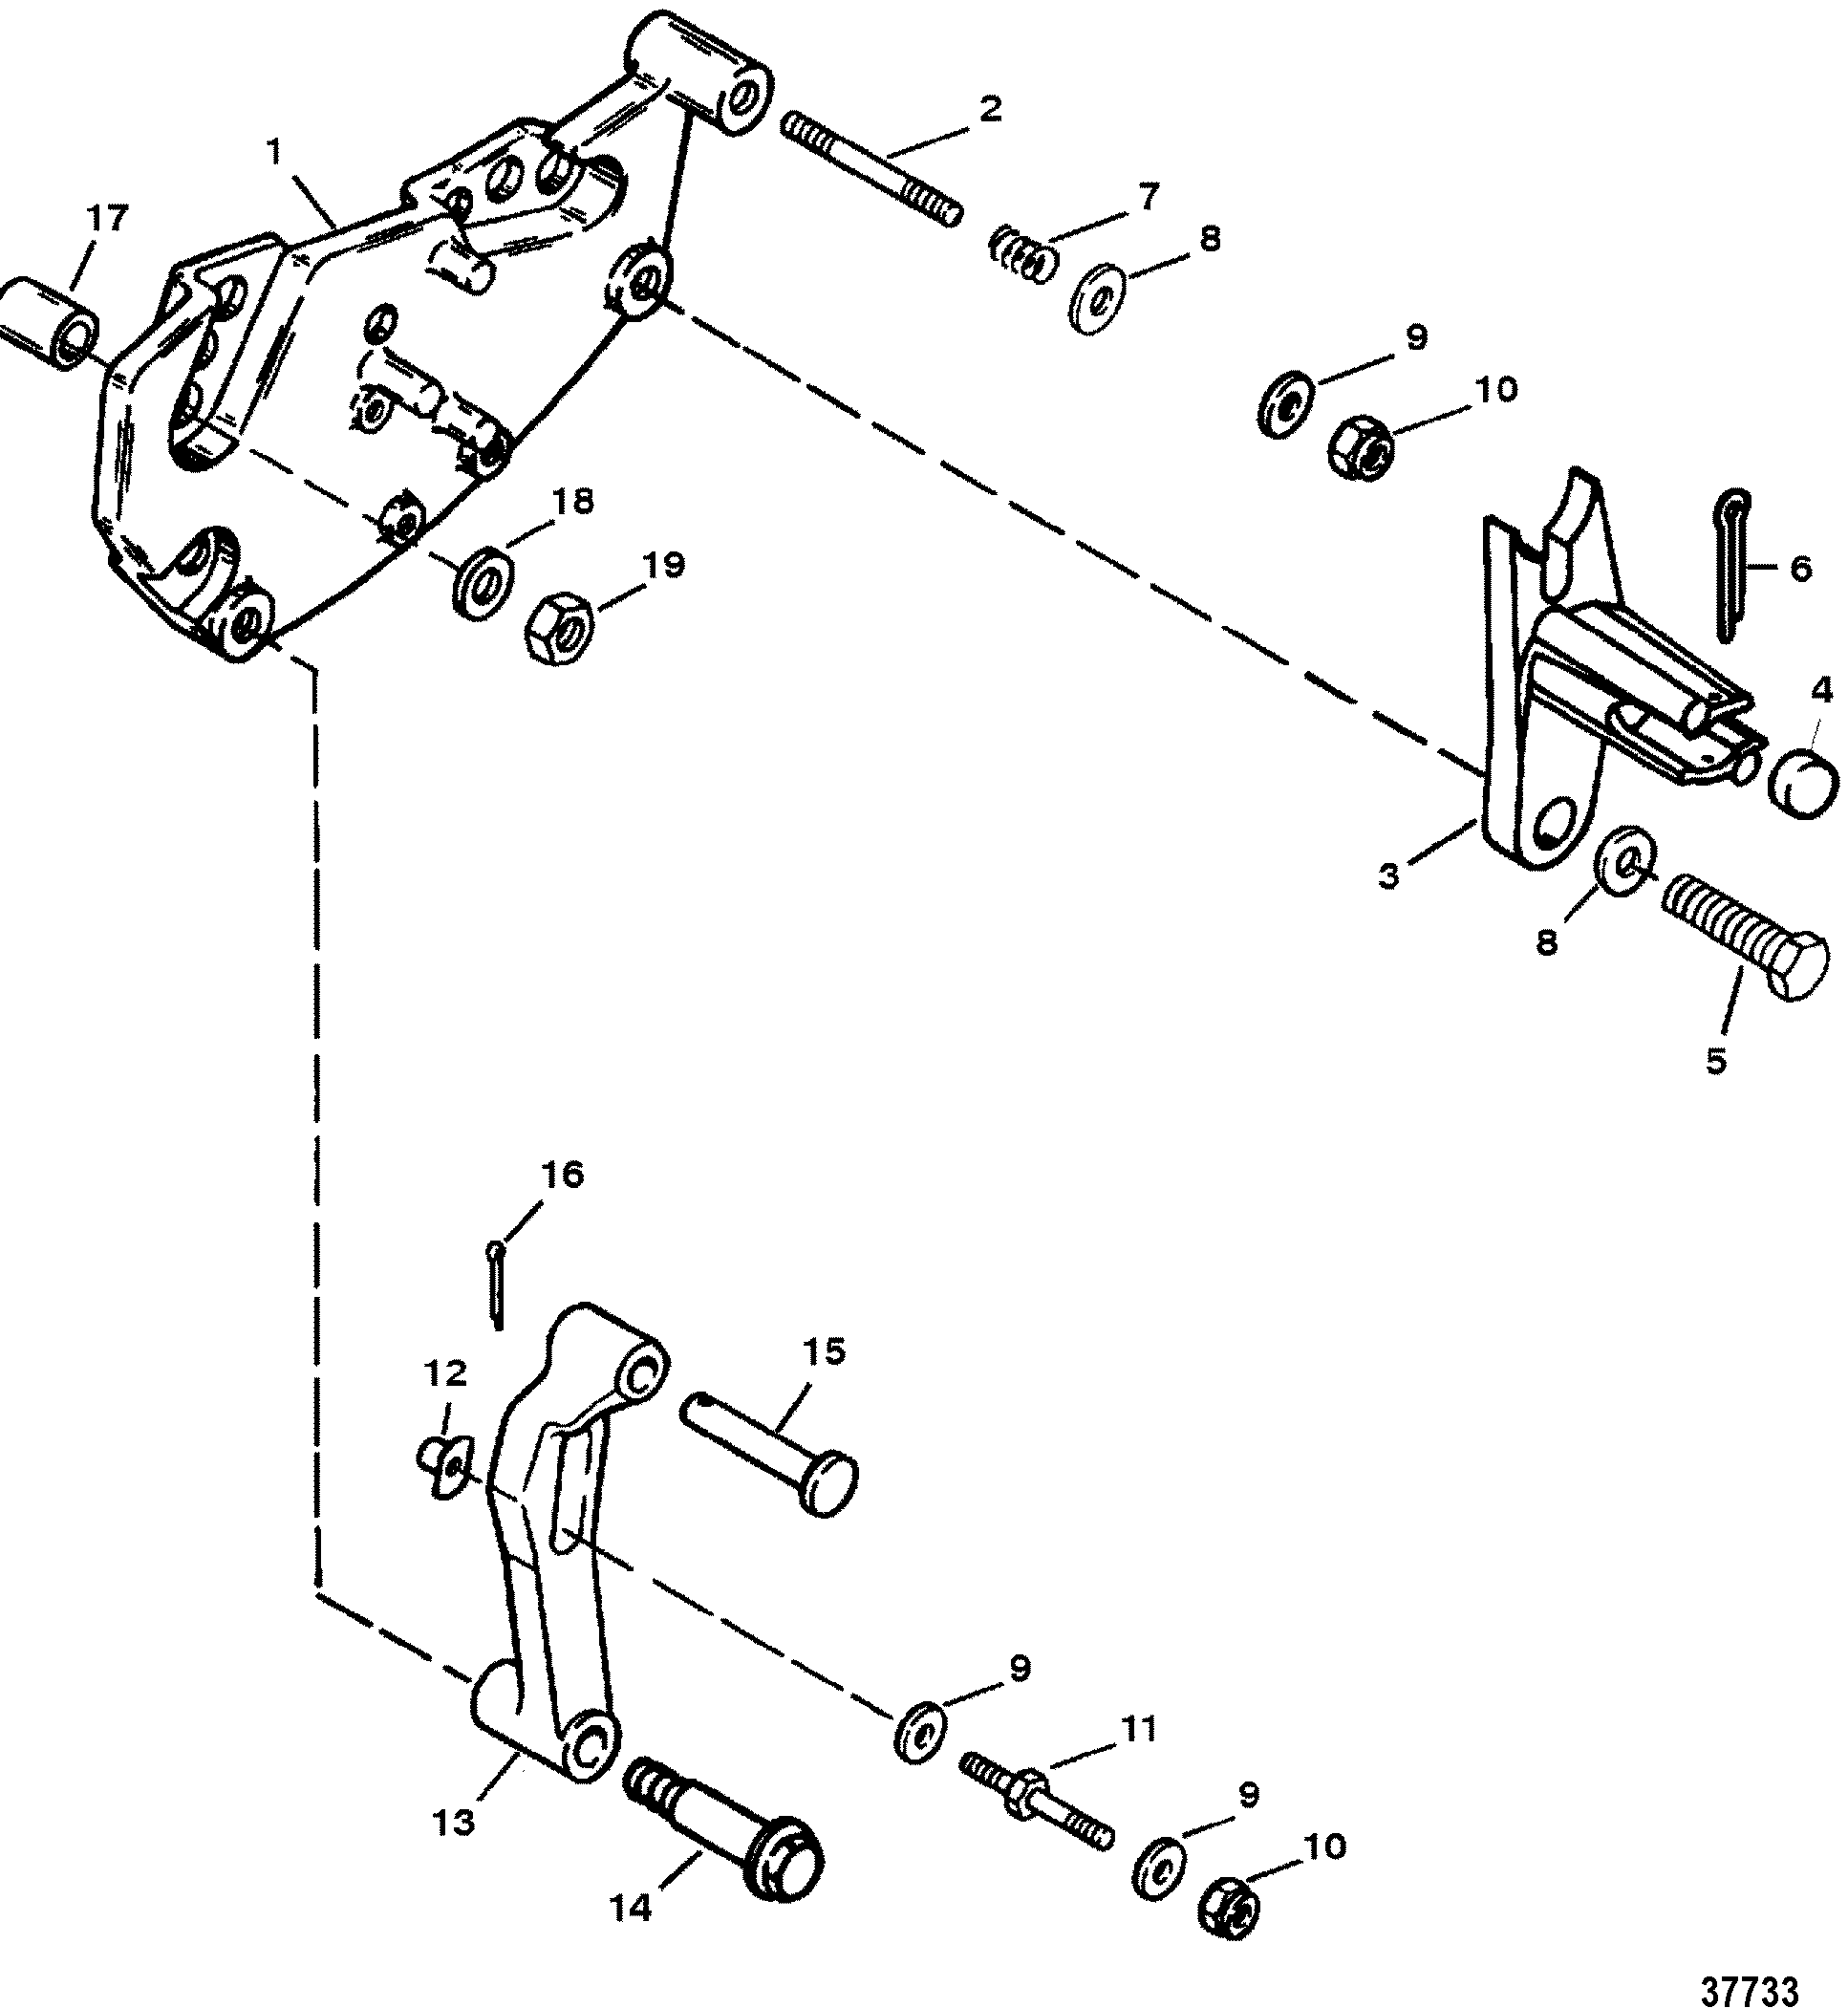 hight resolution of section drawing hover or click to view larger